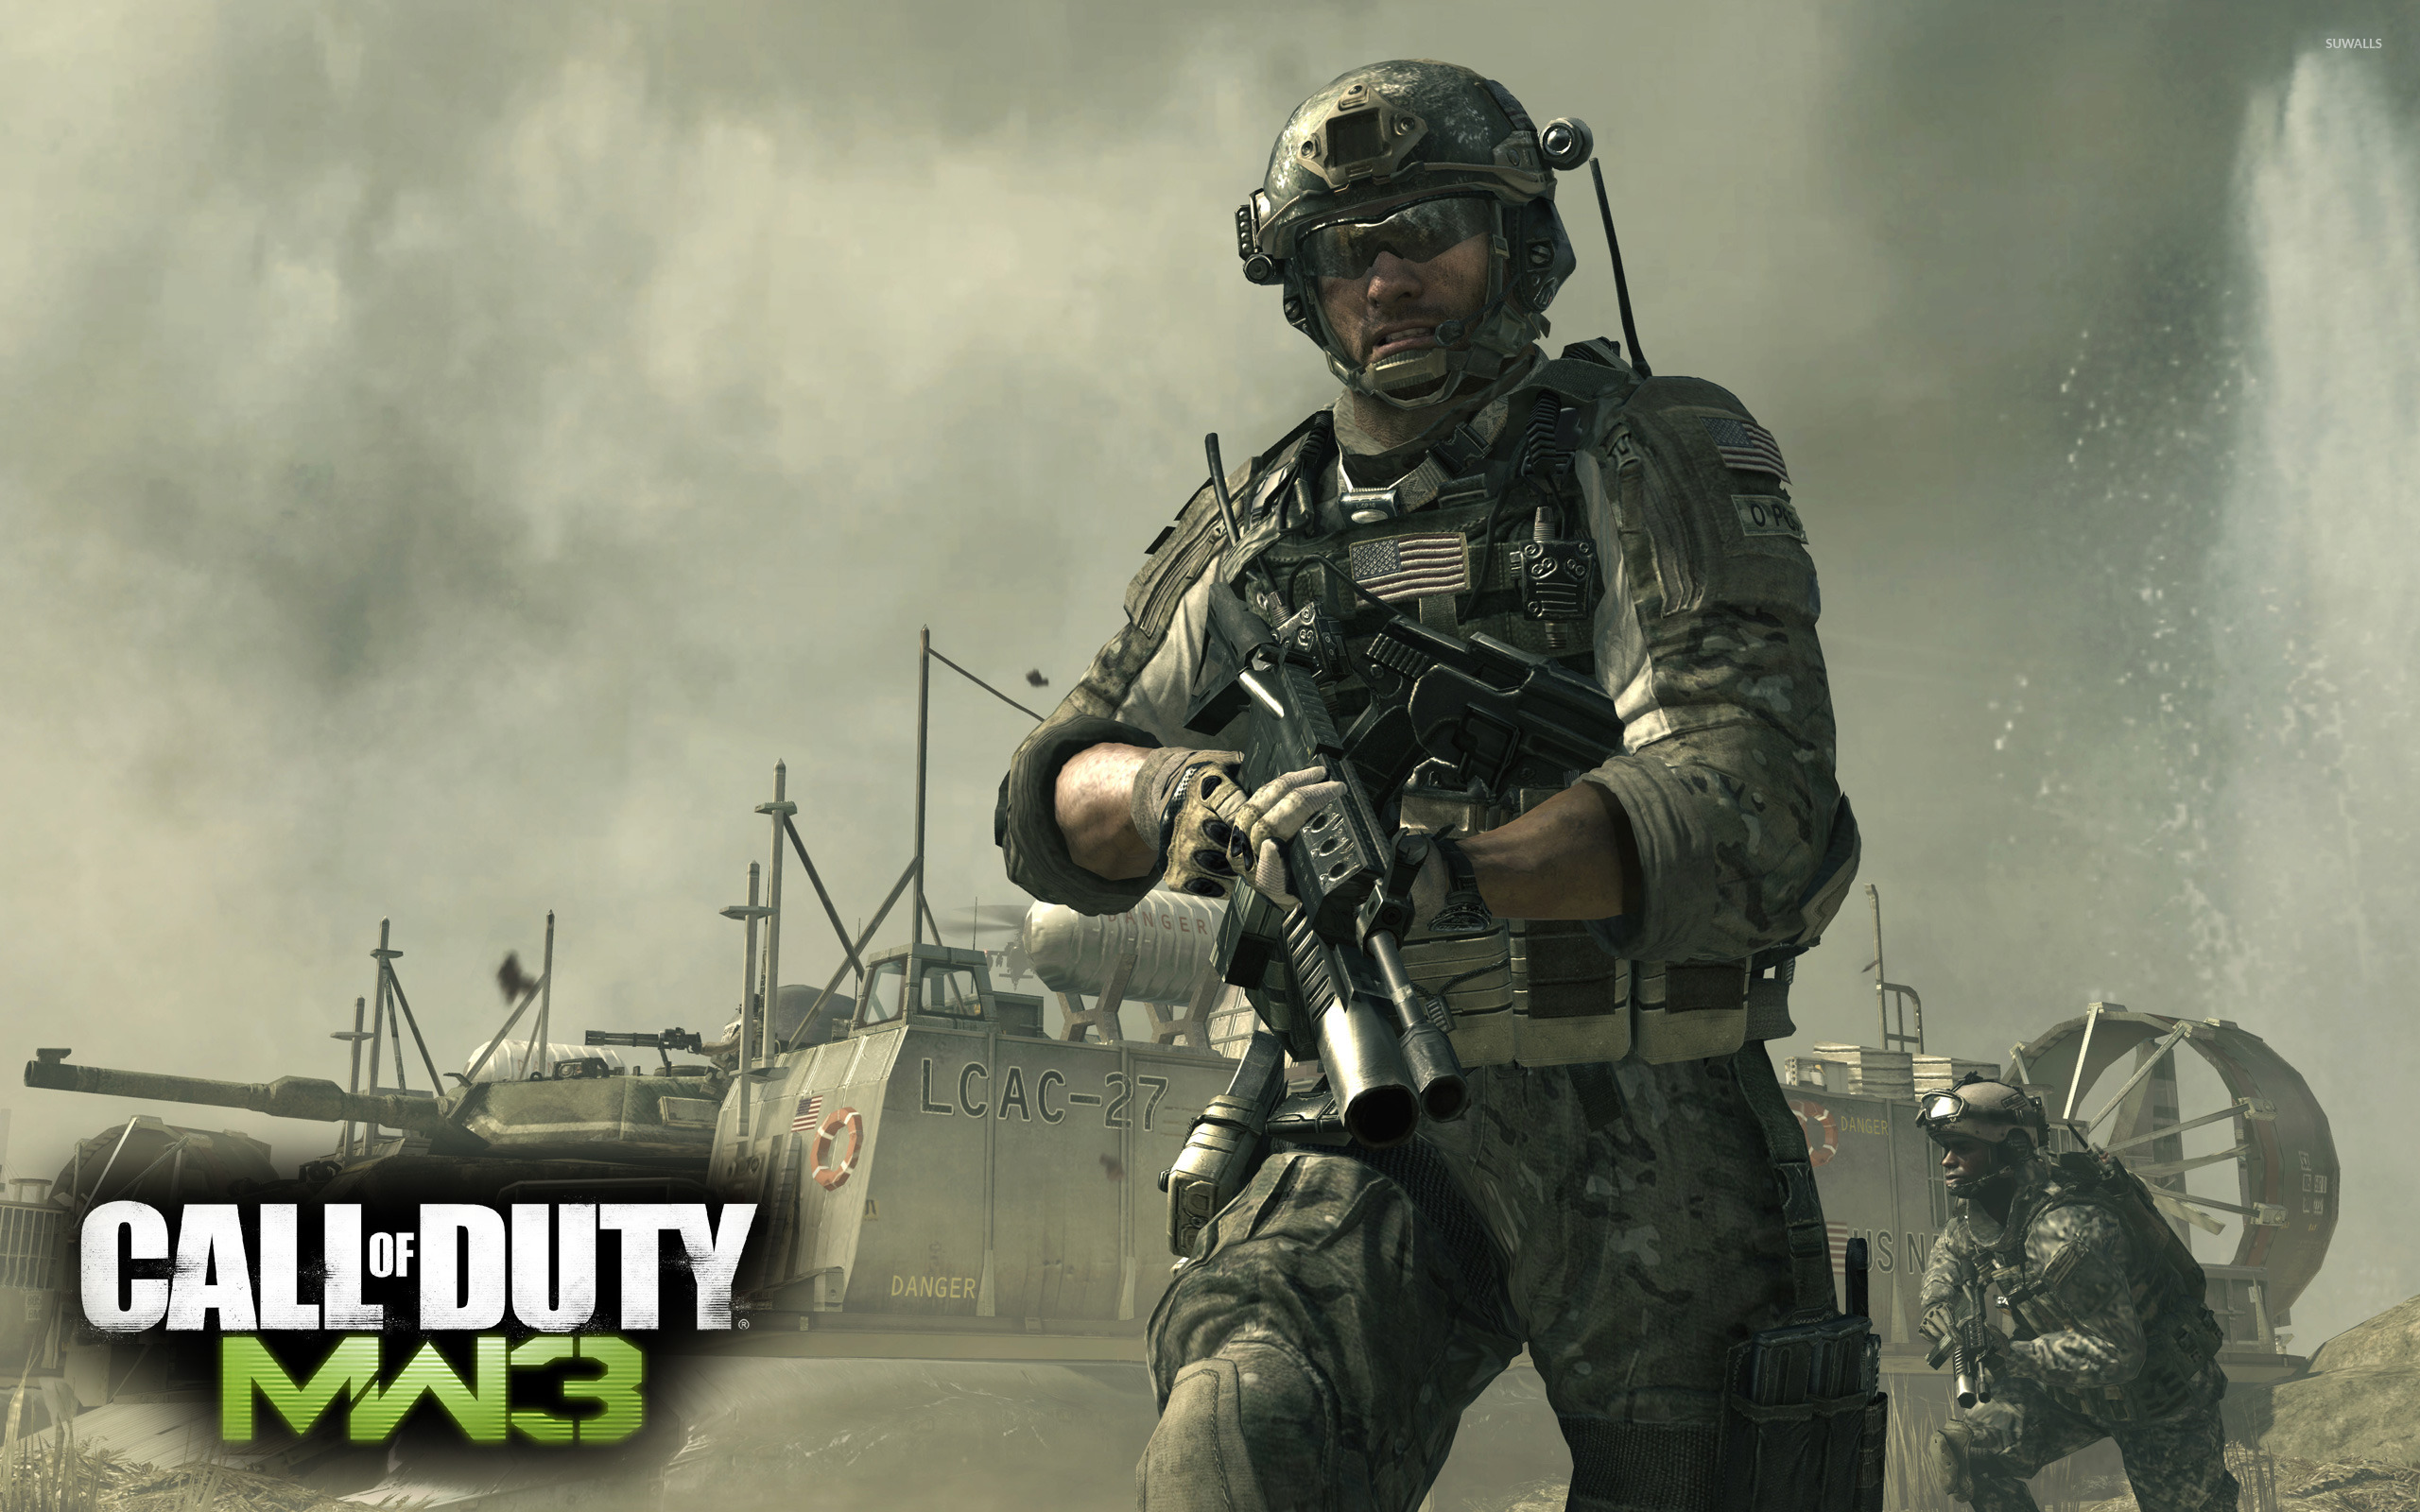 Call Of Duty Modern Warfare 3 3 Wallpaper Game Wallpapers